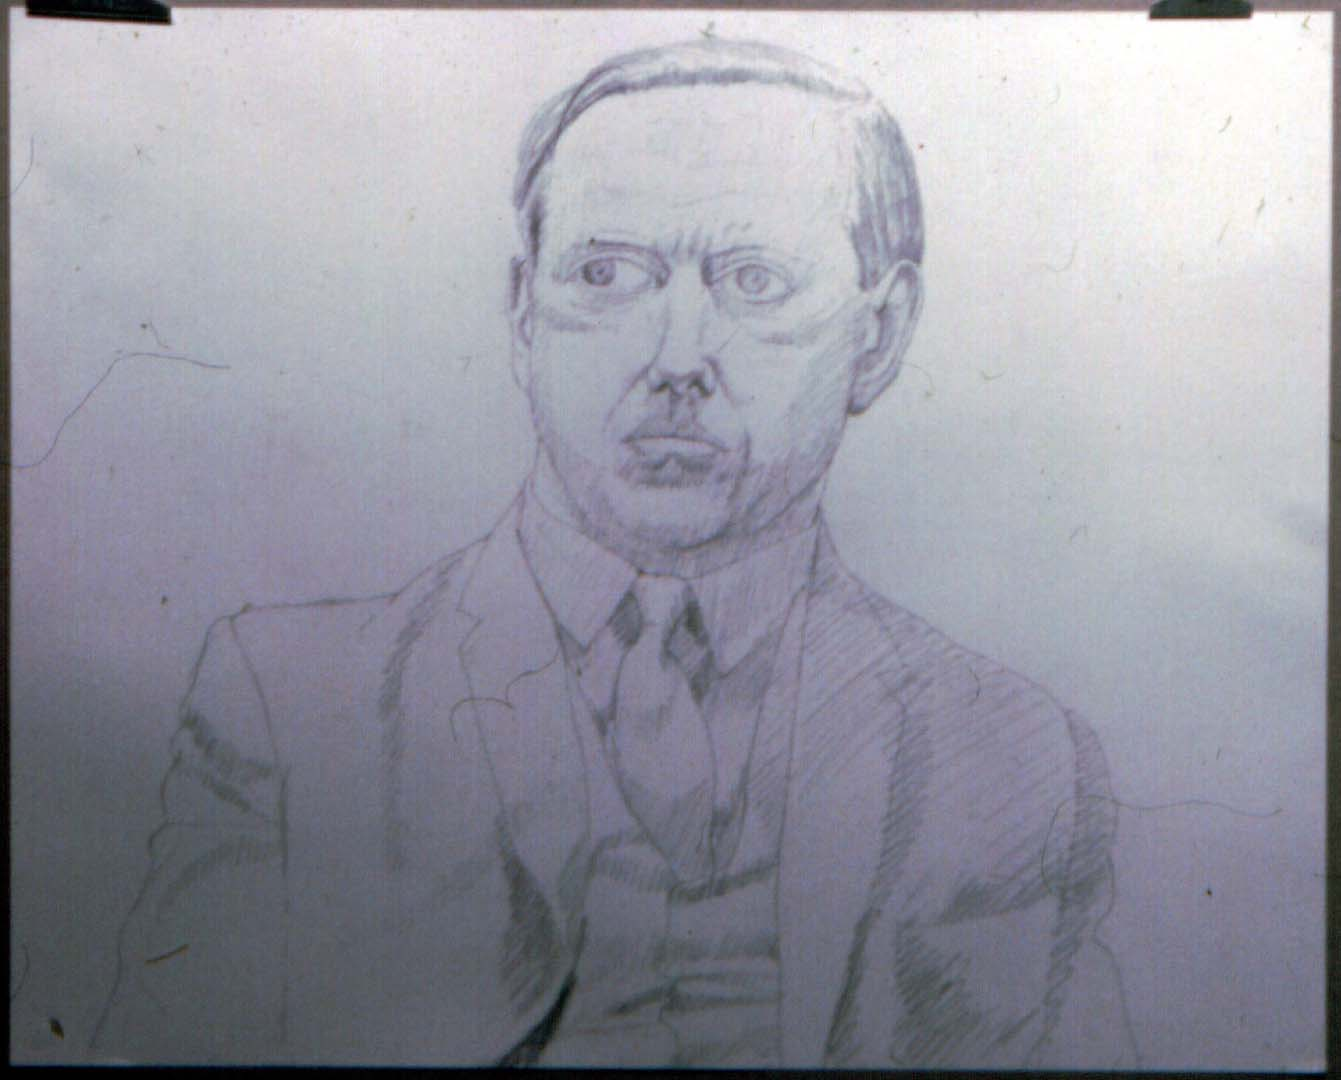 1966 Portrait of Diebold 2 Pencil on paper Dimensions Unknown